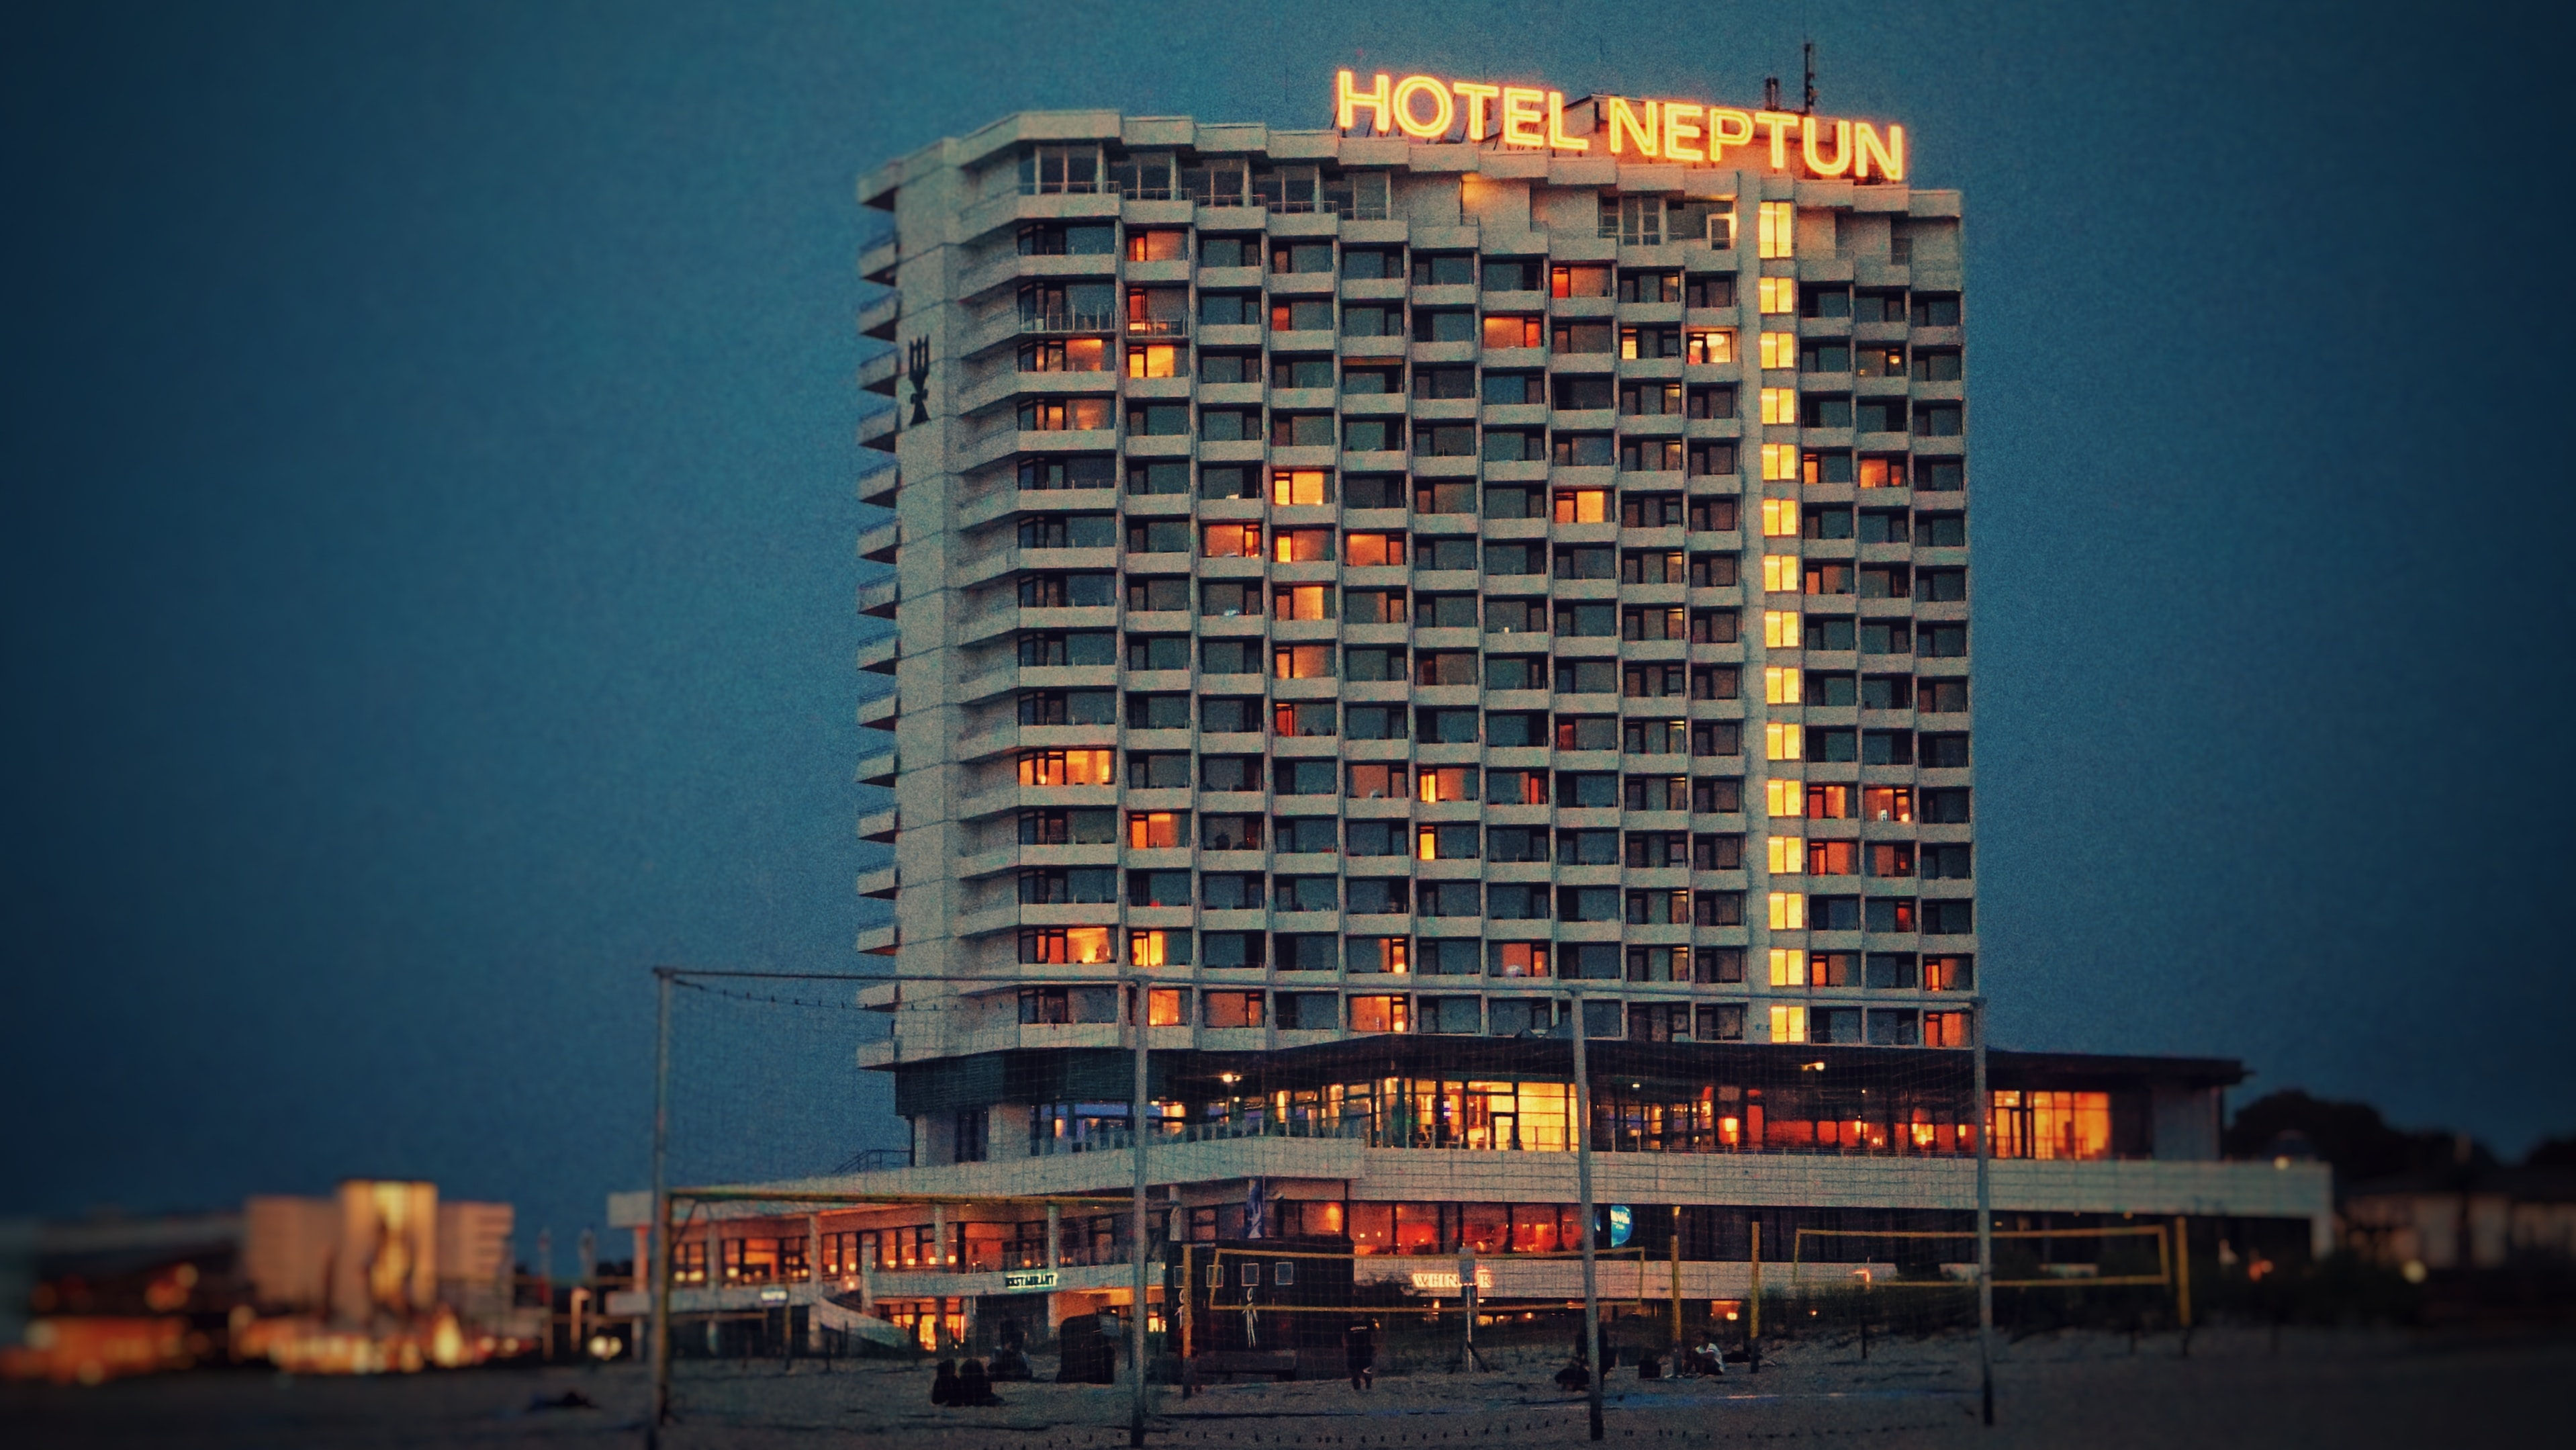 Hotel Neptun building under blue sky